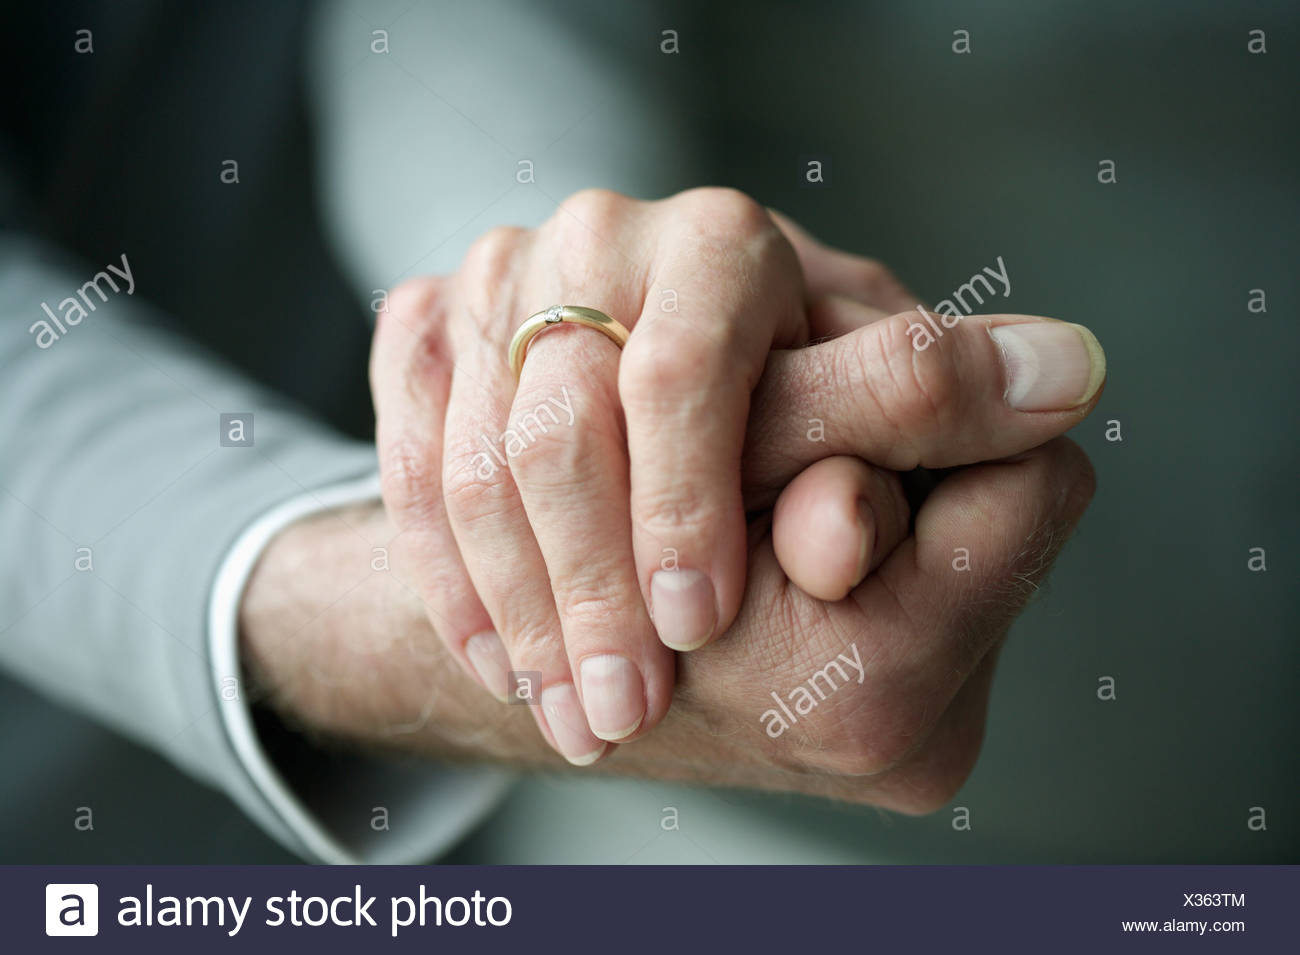 Tow hands holding each other - Stock Image